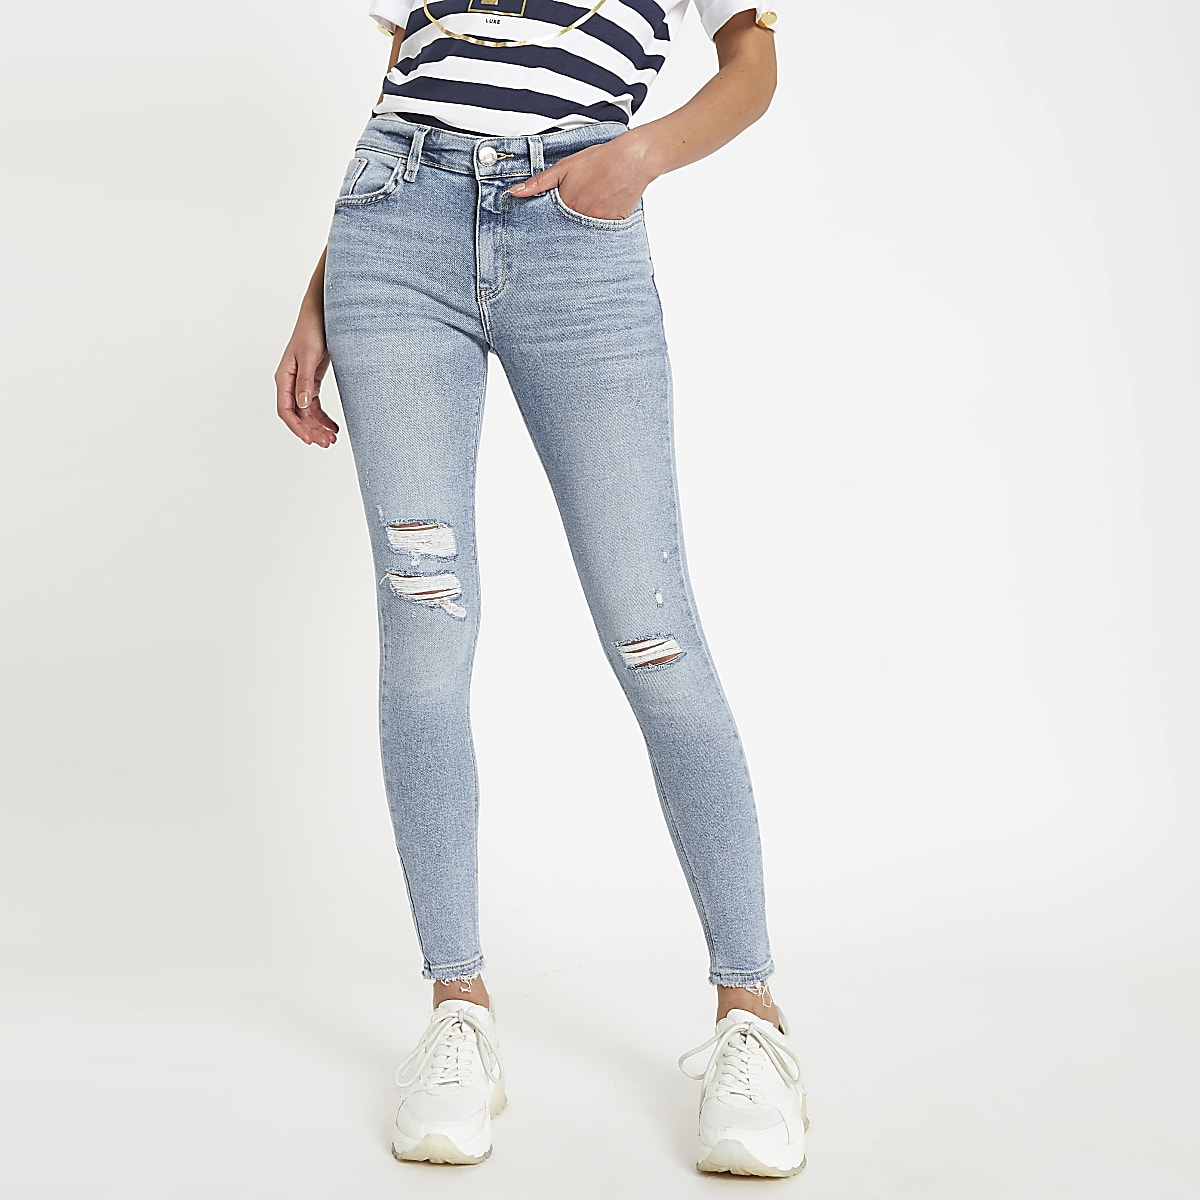 Amelie - Lichtblauwe superskinny ripped jeans